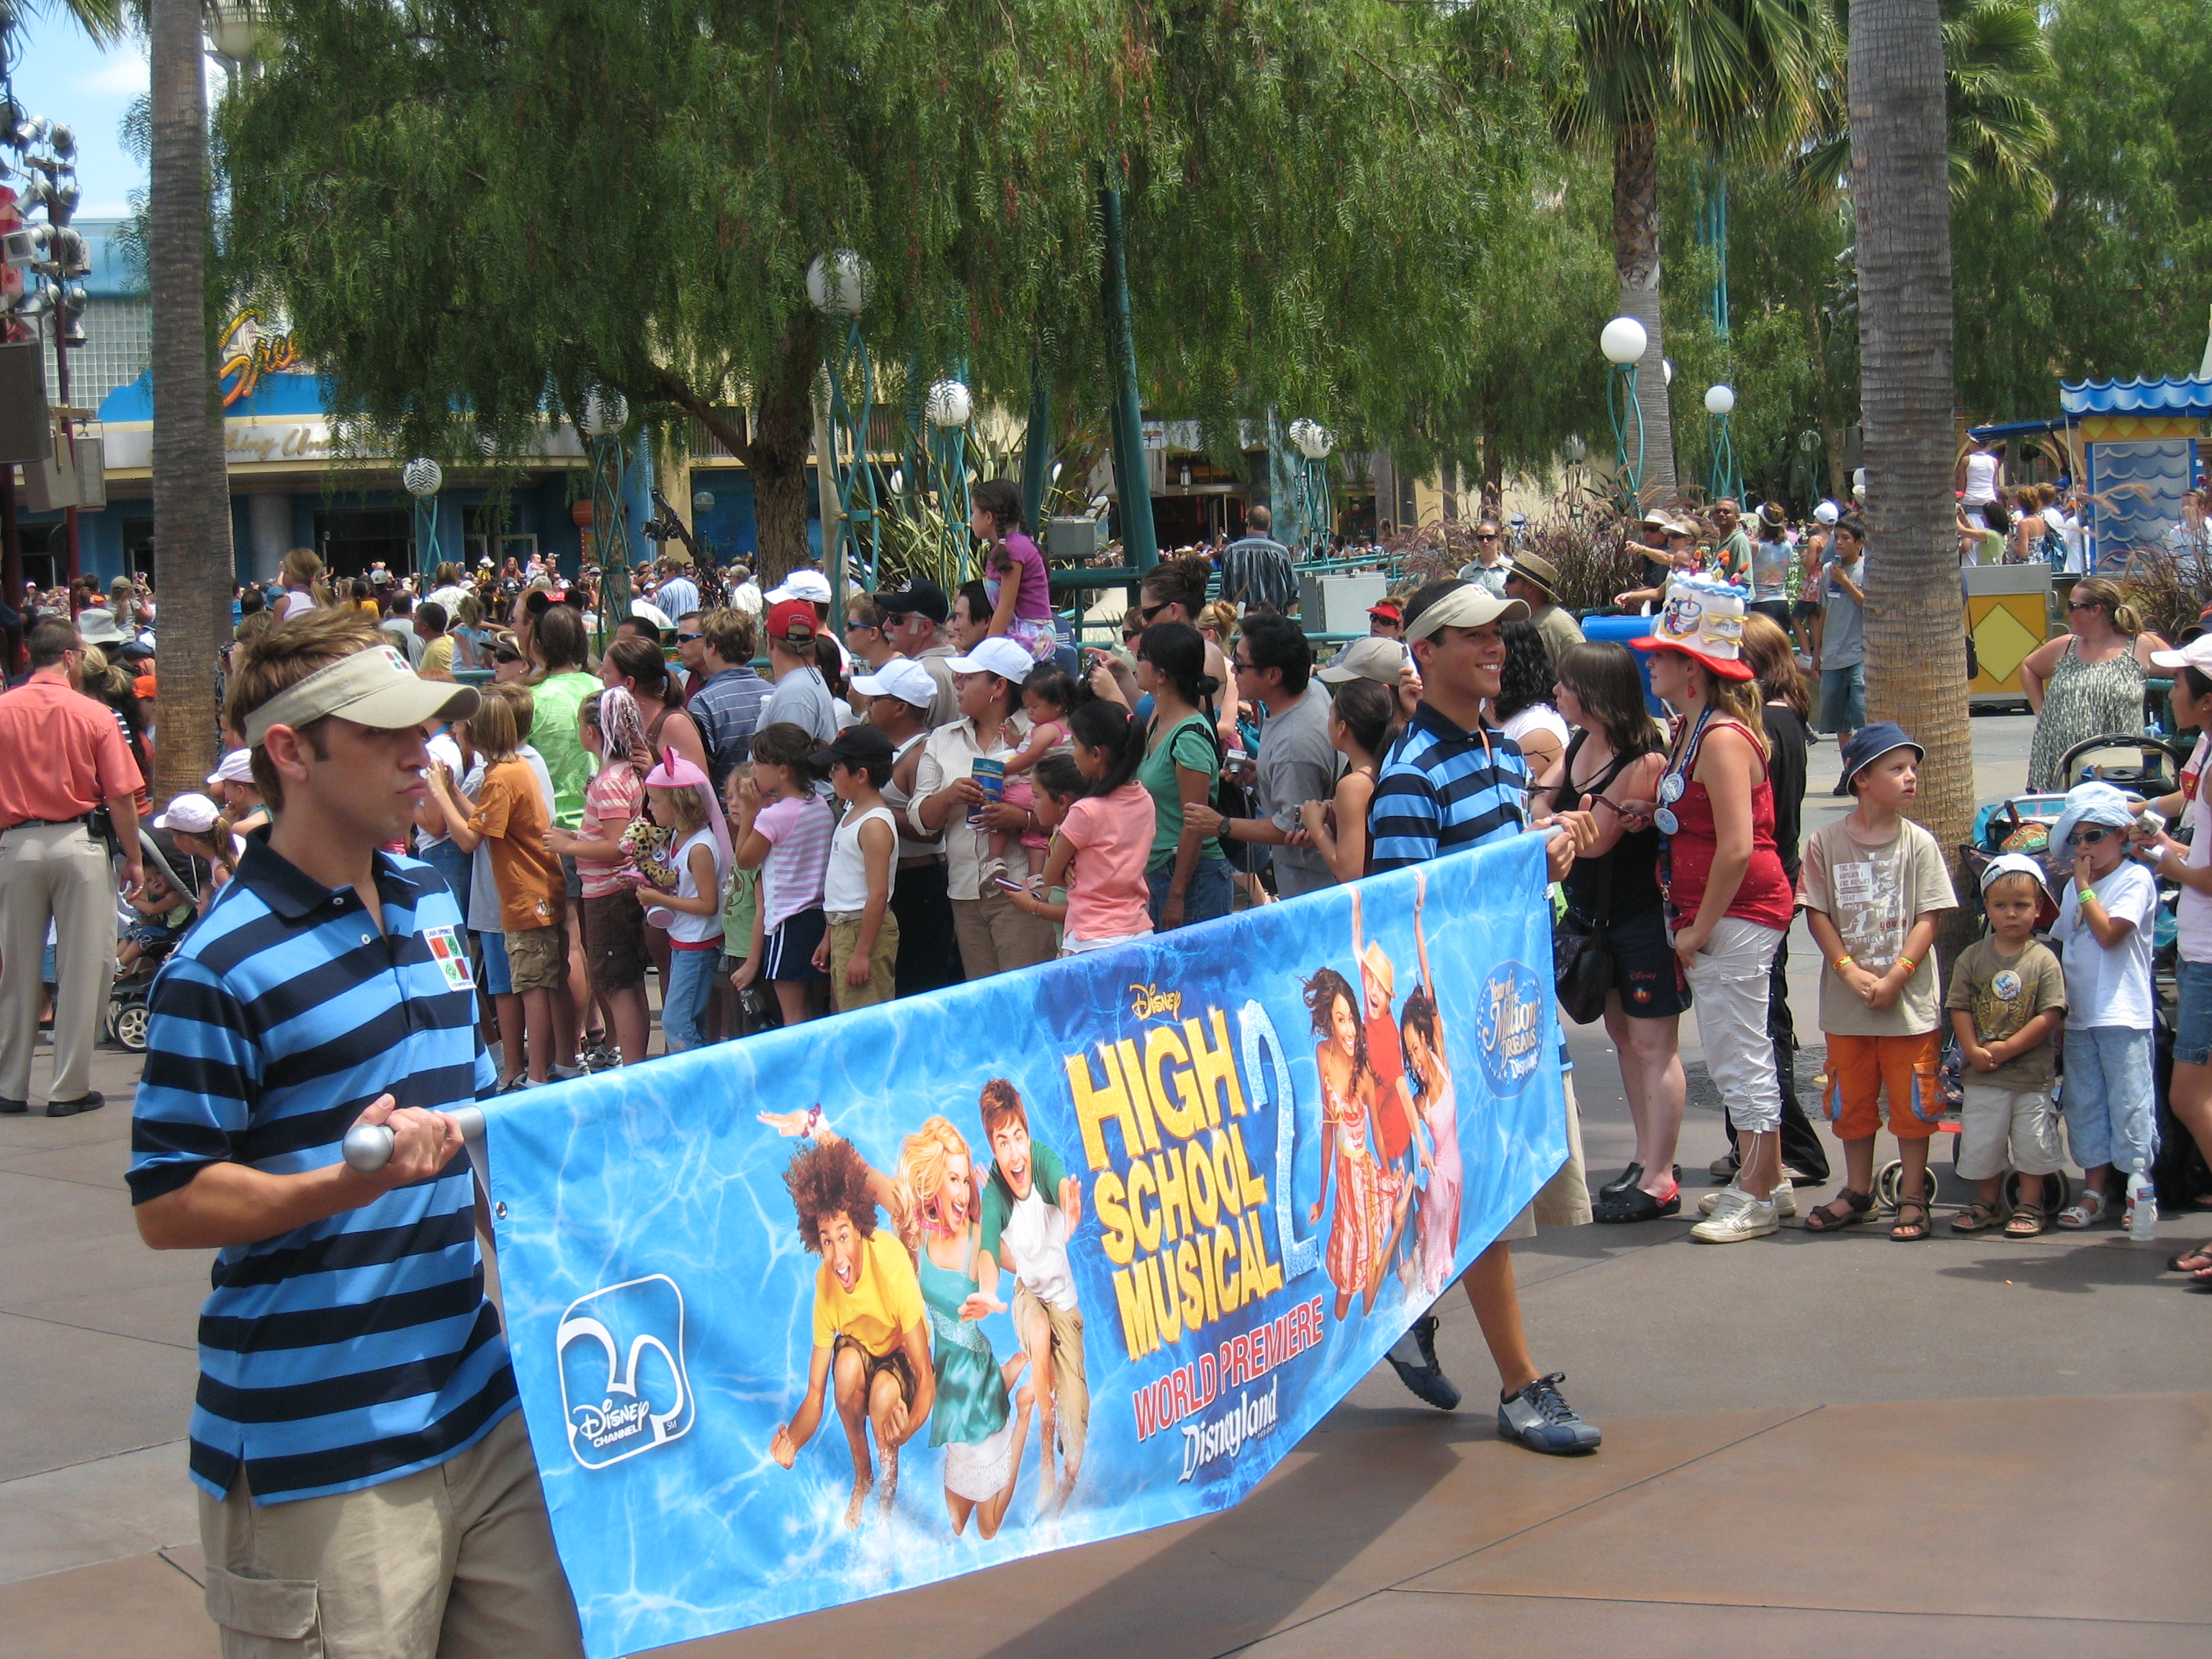 File:High School Musical 2 premier parade.JPG - Wikimedia ...